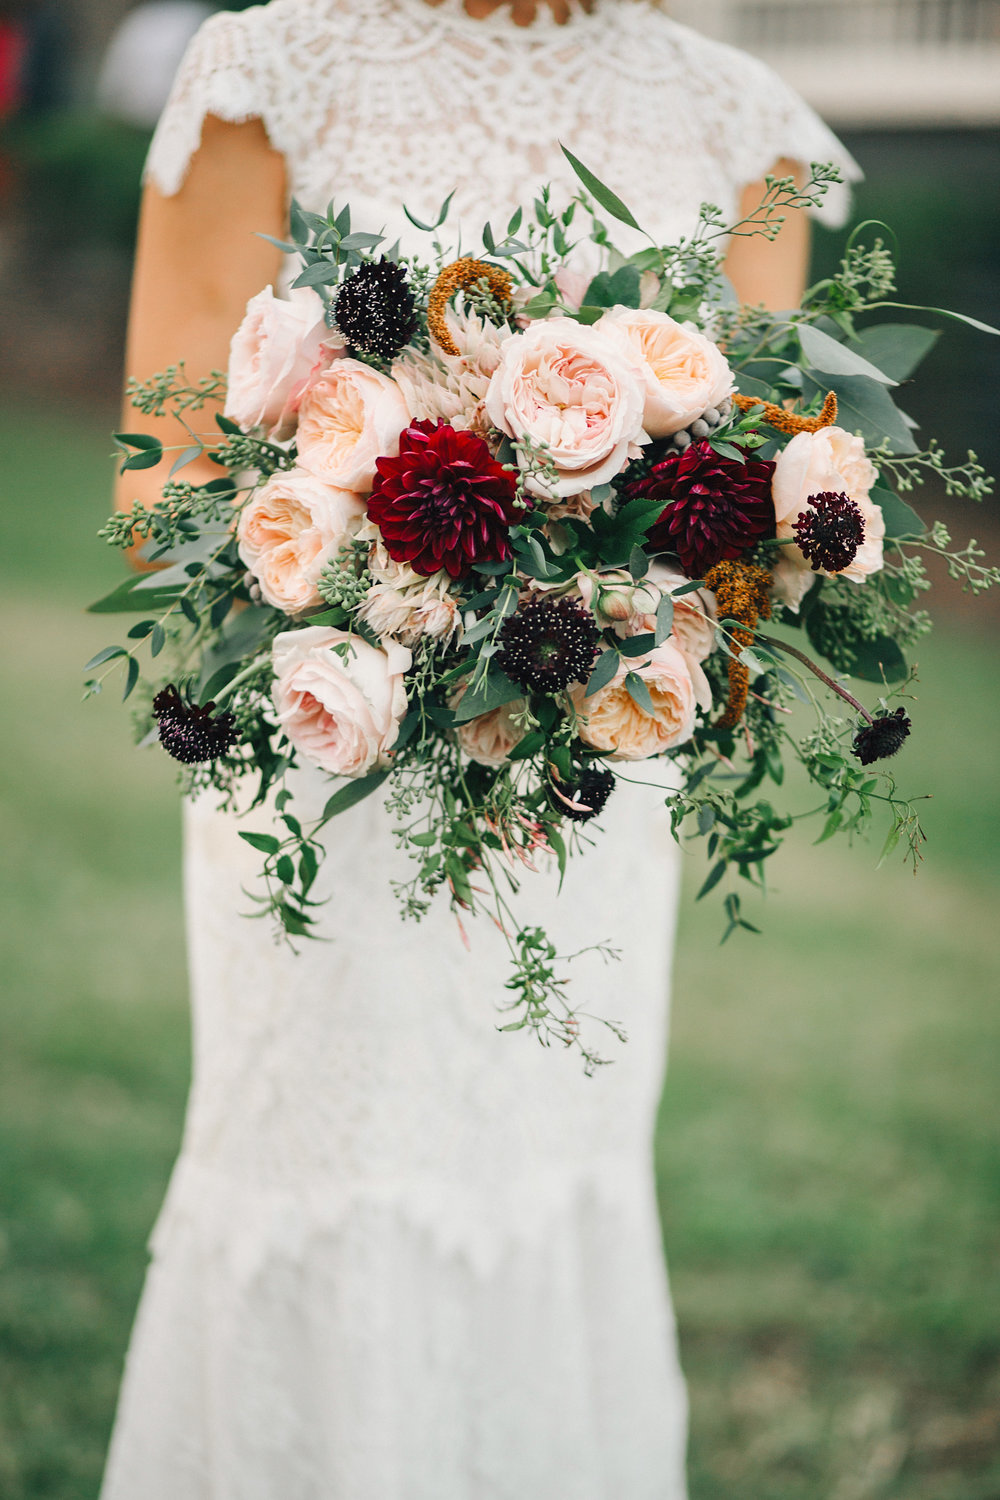 Lush, organic bridal bouquet with burgundy dahlias, peach garden roses, and trailing greenery // Nashville Wedding Floral Design